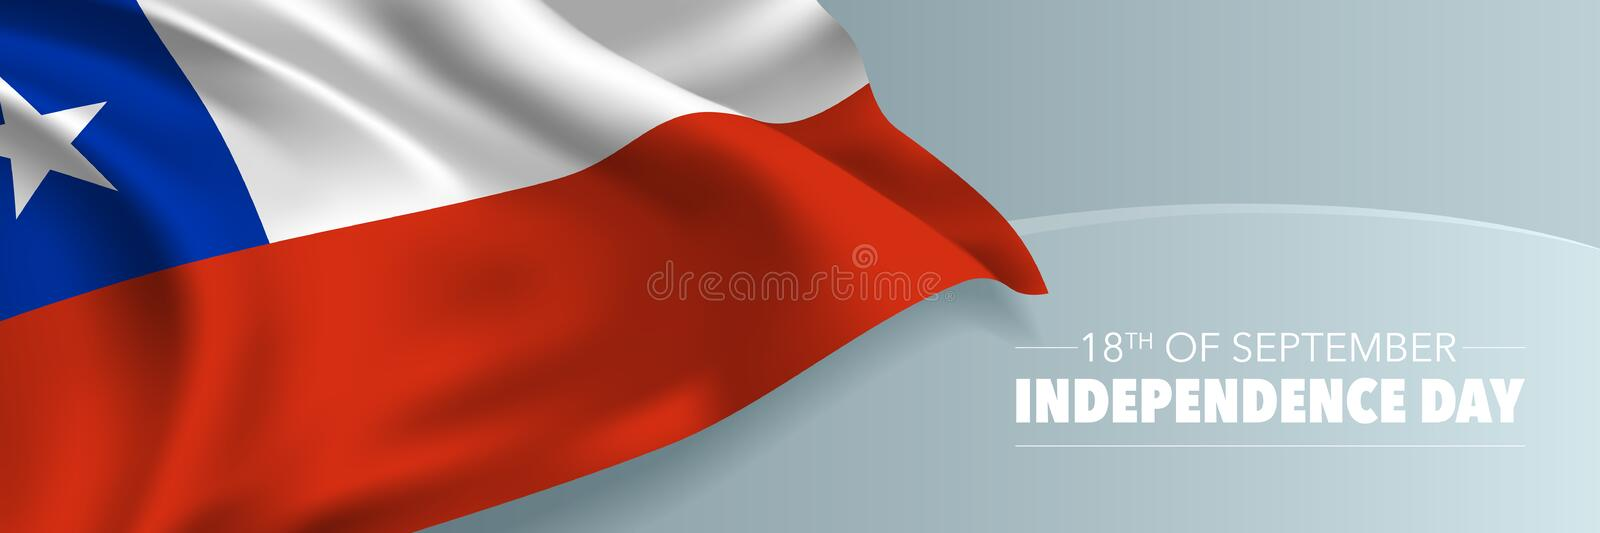 Chile independence day vector banner, greeting card stock photo